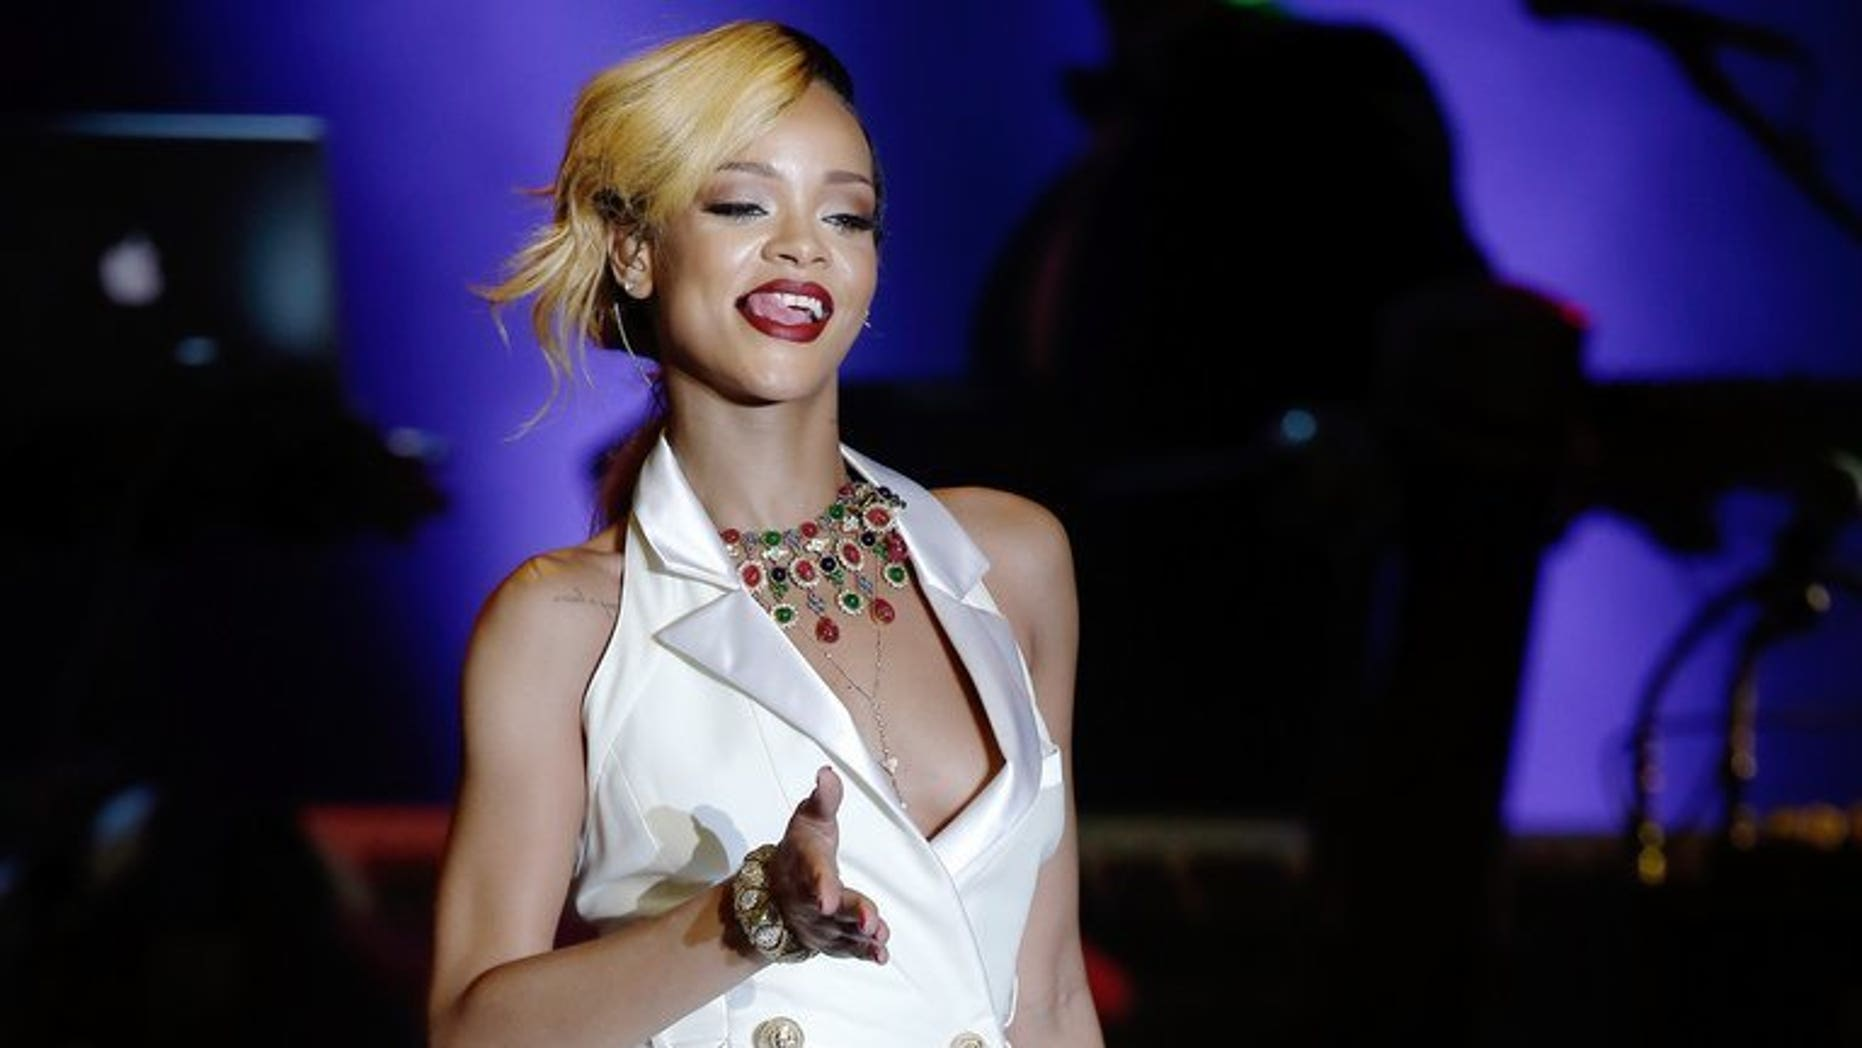 Barbadian singer Rihanna performs on stage in Monaco on July 10, 2013. Pop star Rihanna on Wednesday won a legal battle to prevent the British fashion chain Topshop from selling T-shirts bearing her image.